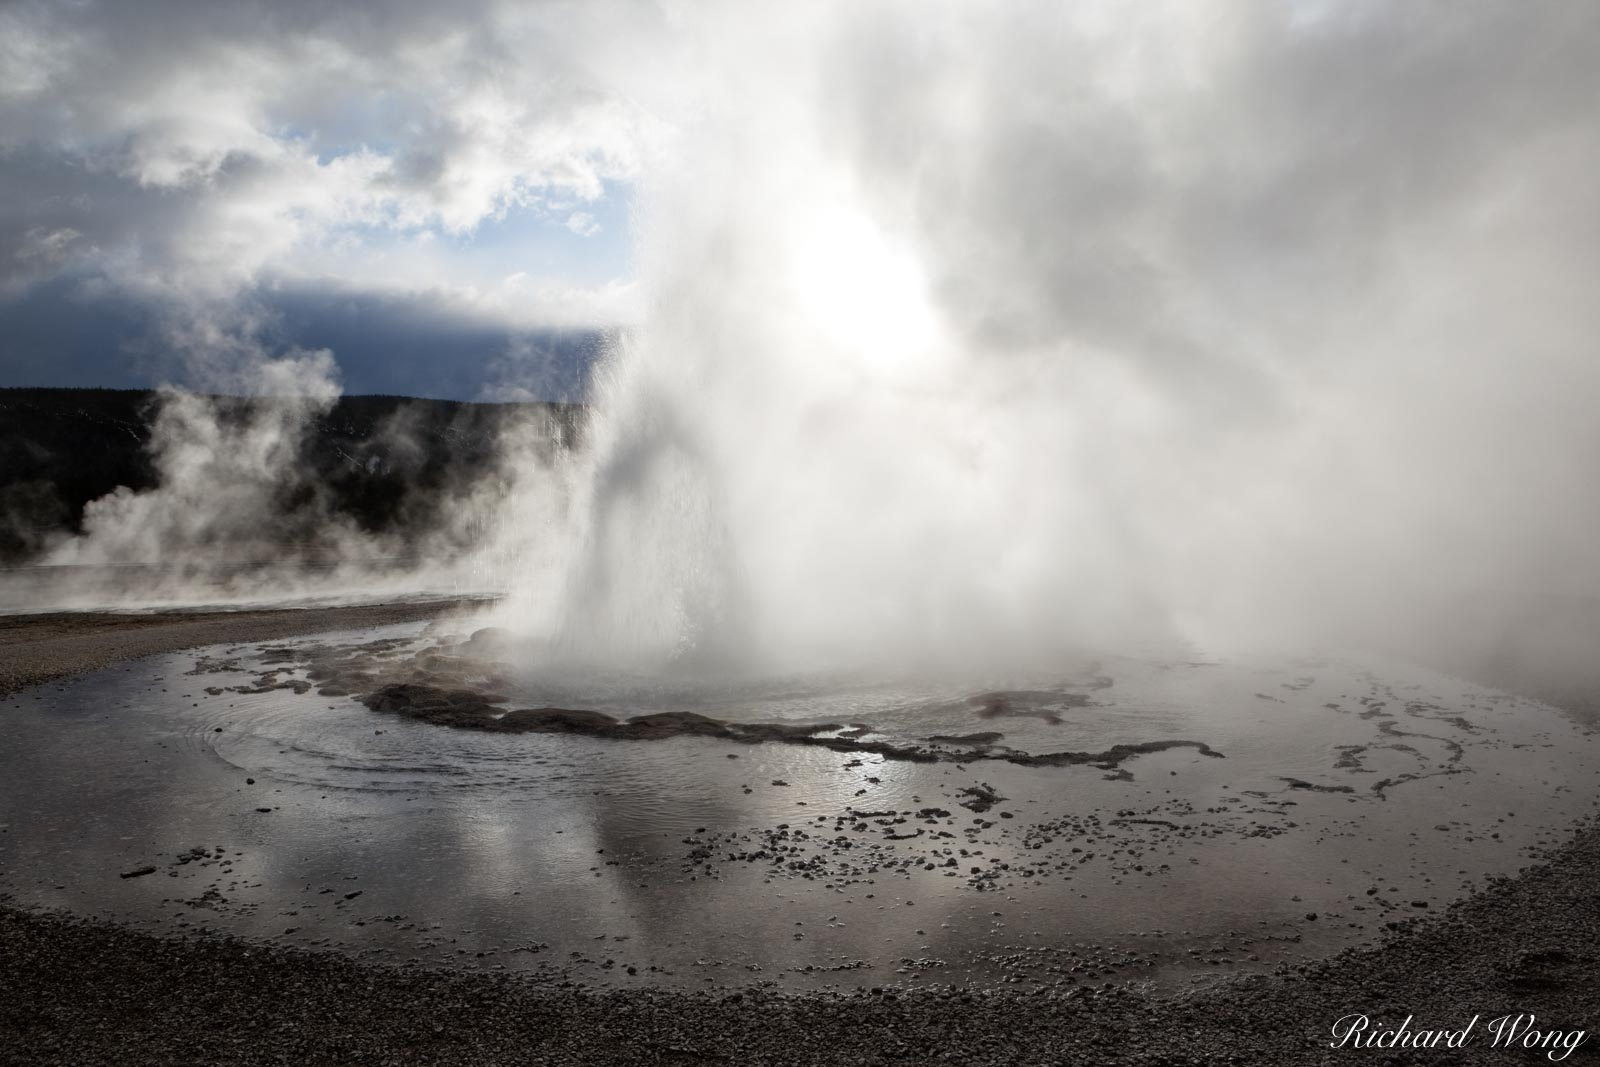 action, active, boiling, bubbling, ecology, ecosystem, erupt, erupting, eruption, ethereal, fumes, fuming, geological, geology, geothermal, geyers, geyserite, geysers, gush, gushing, heat, heated, hot, photo